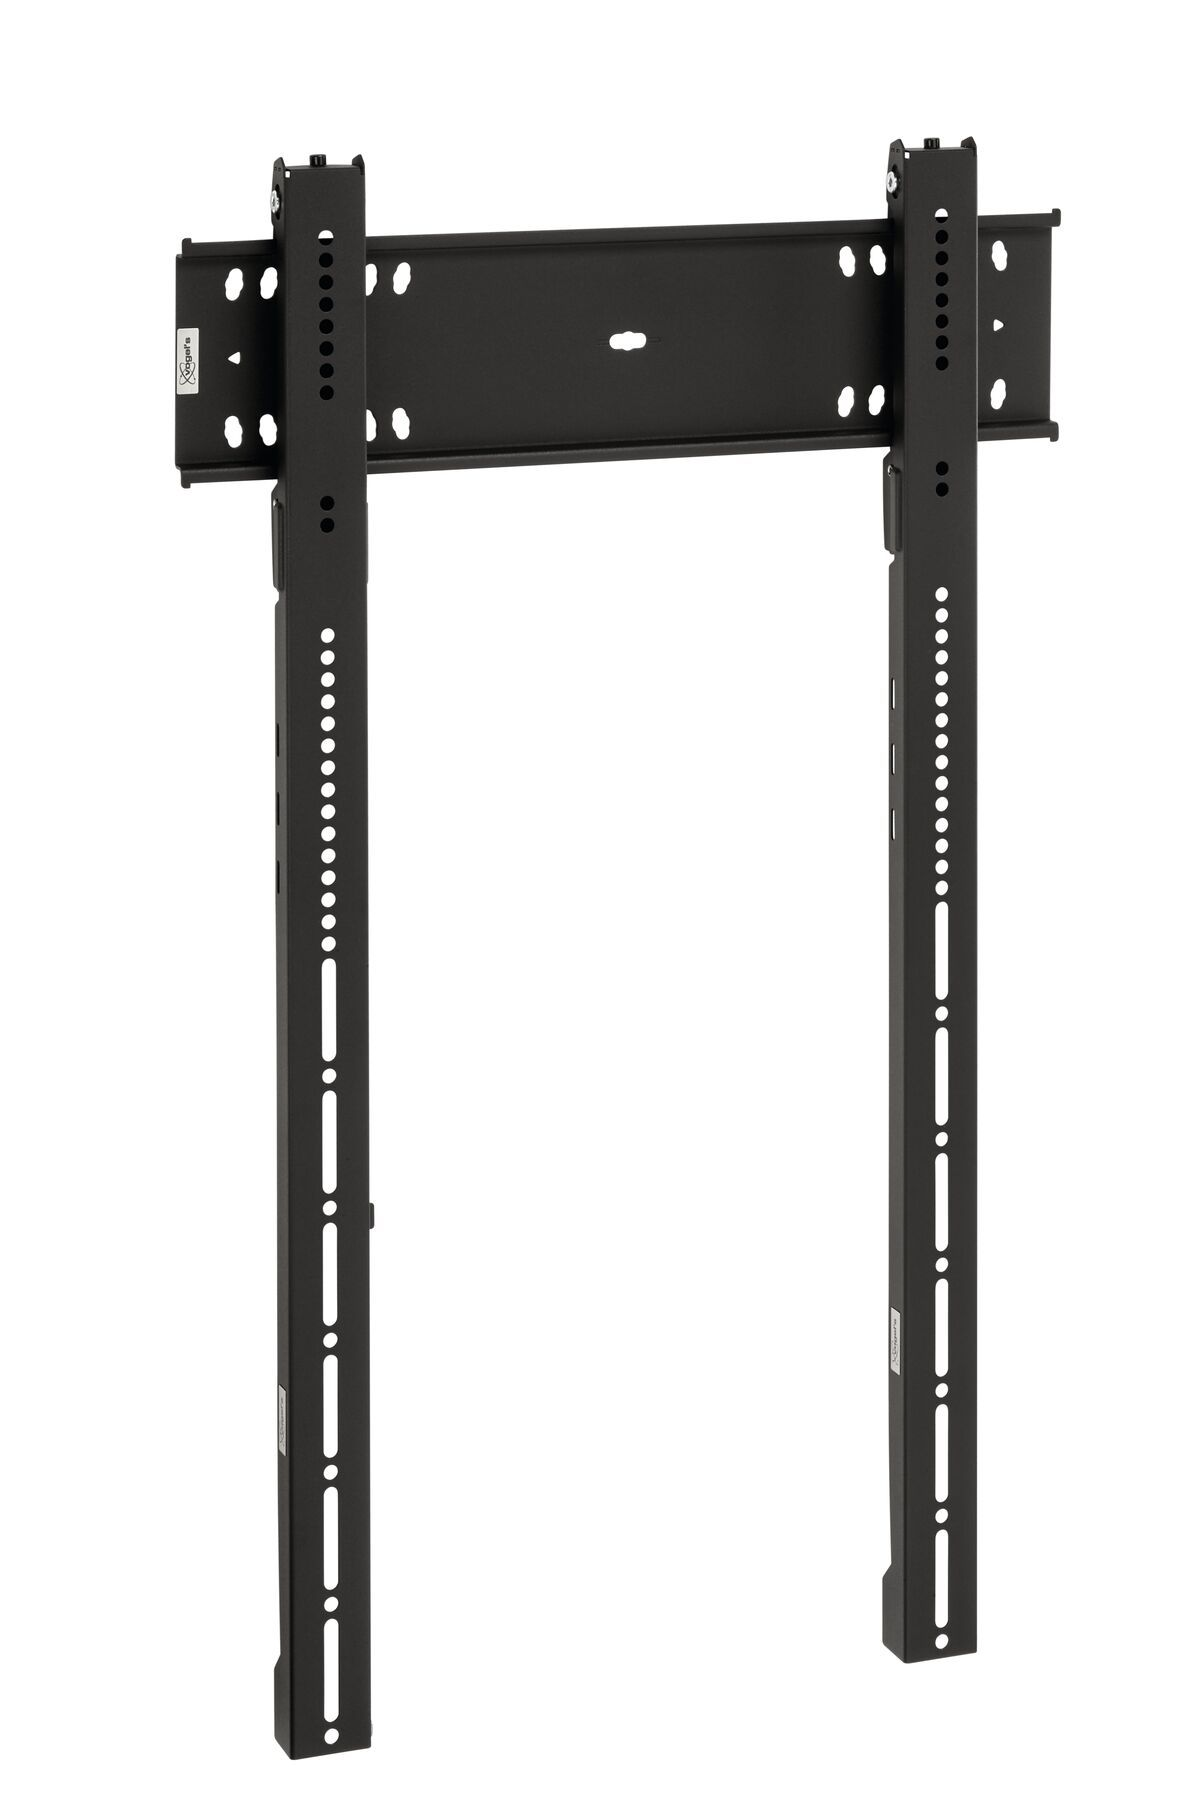 Vogel's PFW 6815 Display wall mount portrait fixed - Product